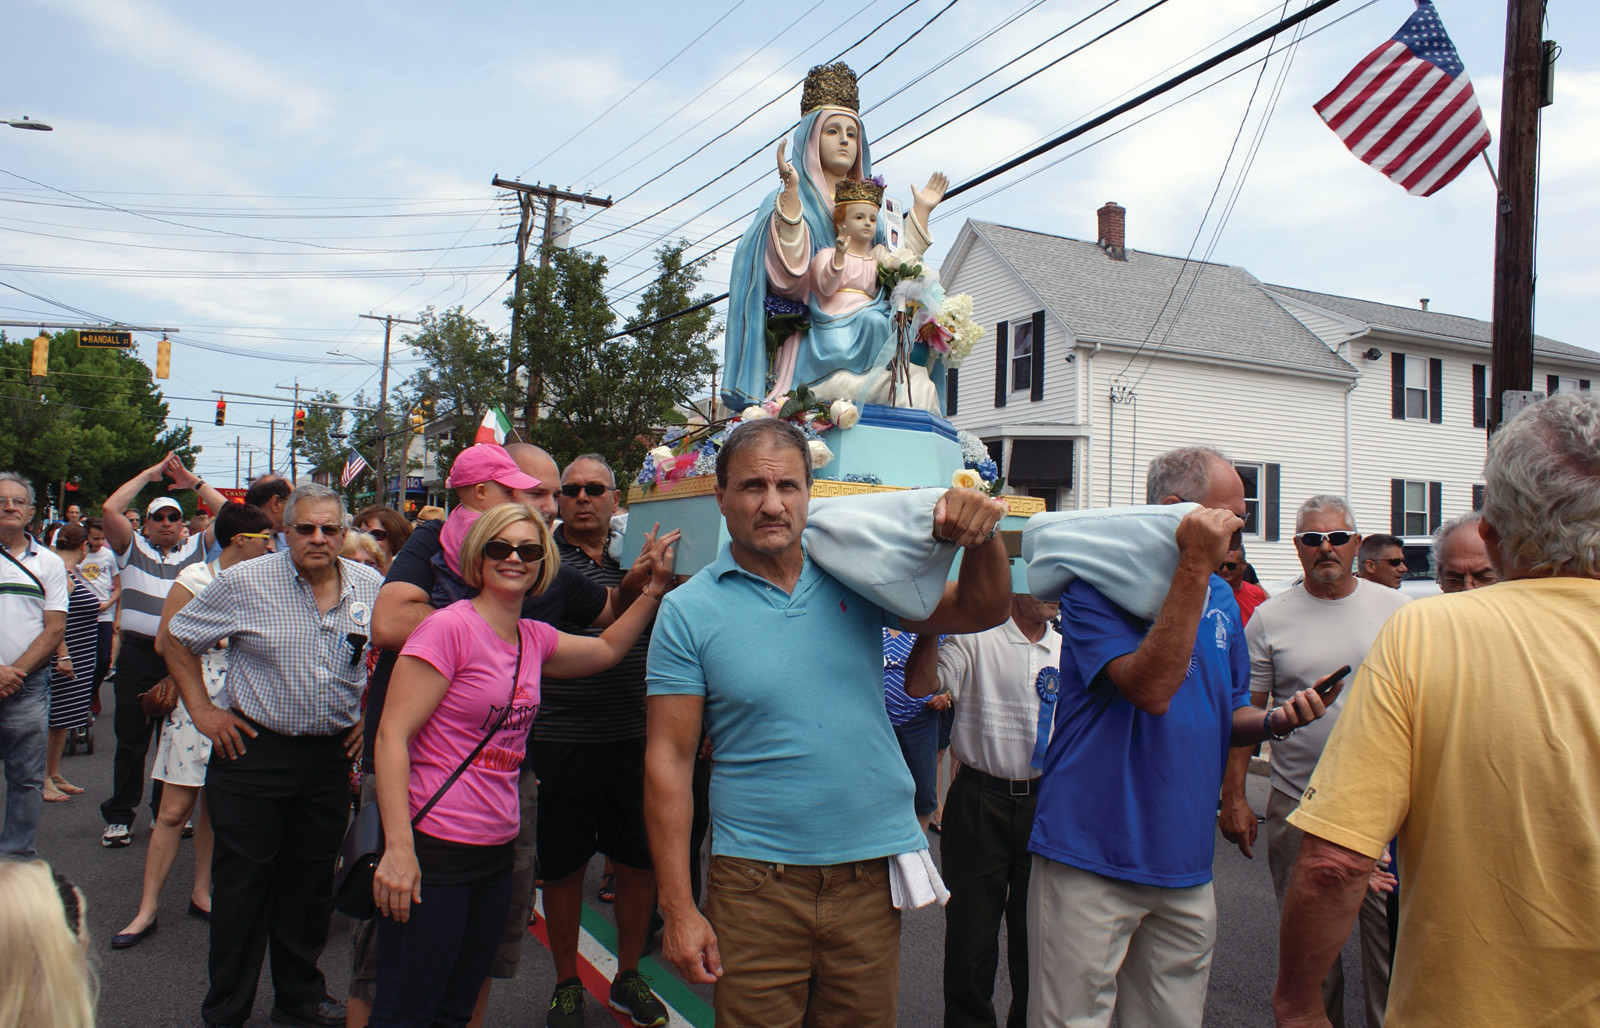 FIRST TIME FOR EVERYTHING: On the left, 1-year-old Sienna Troia leans in with dad David to touch the statue of the Madonna at the St. Mary's Feast Parade on Sunday. Mom Jessica joined them, as it was Sienna's first-ever St. Mary's Feast.